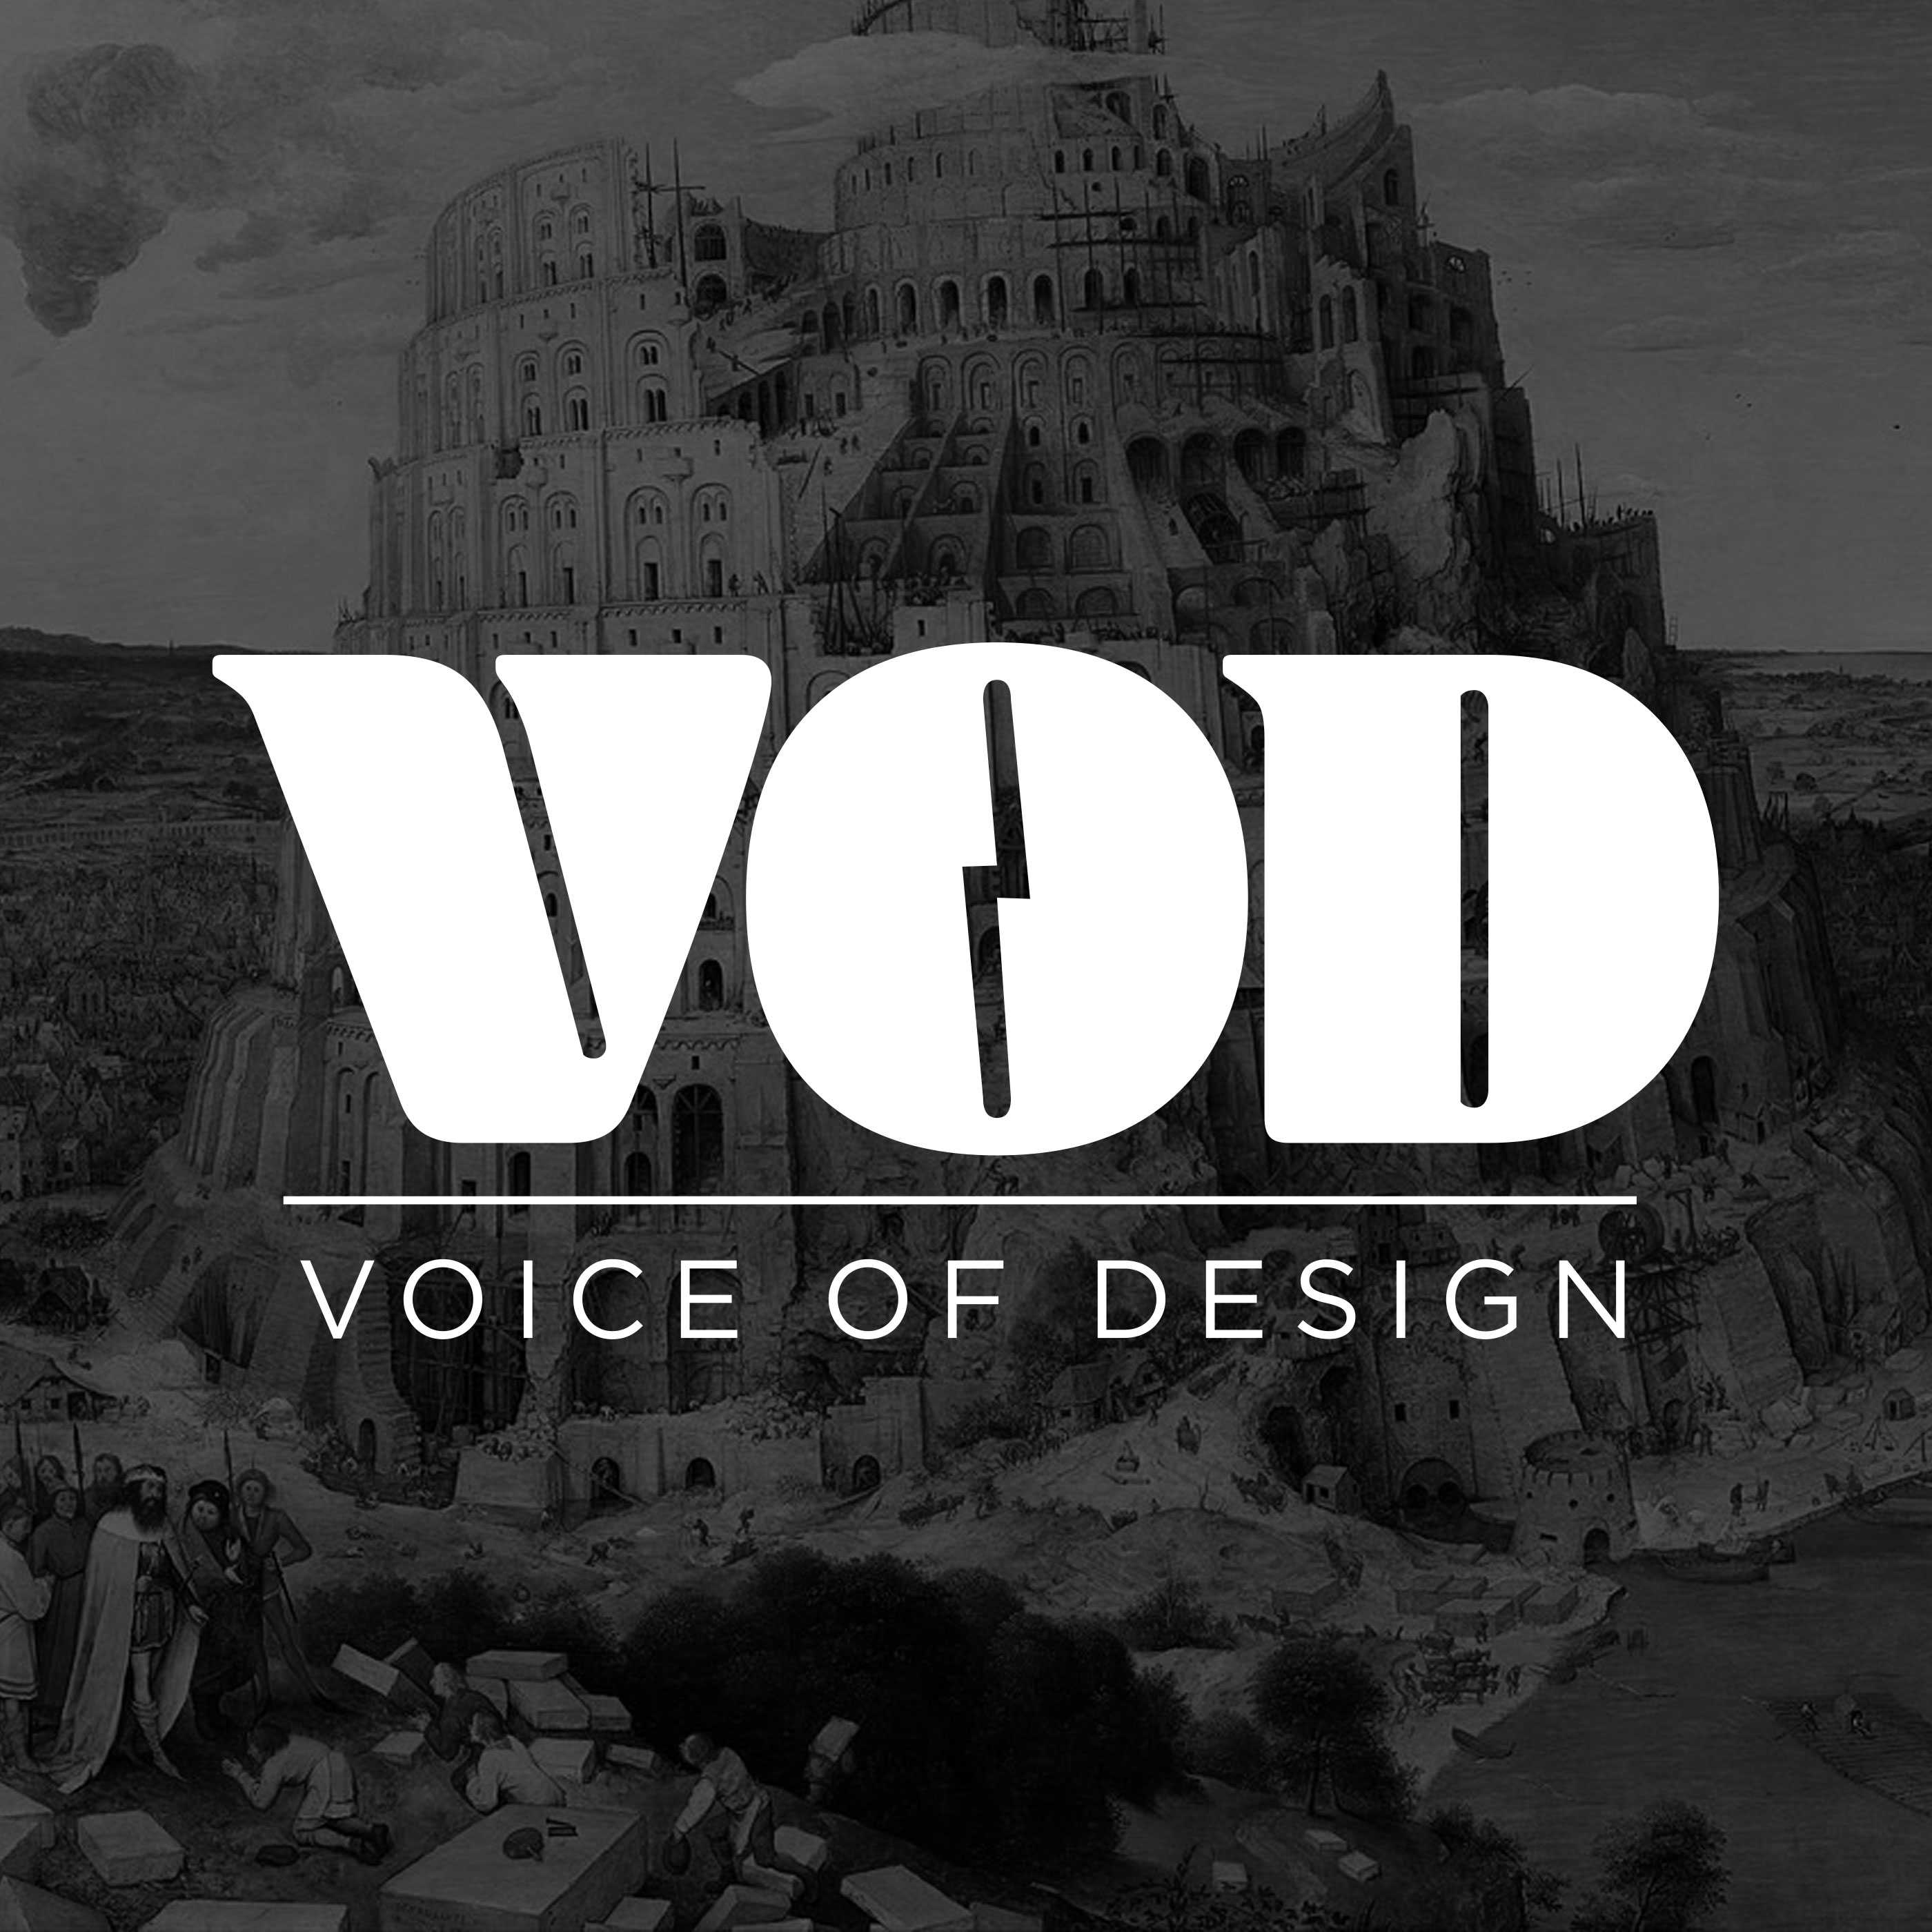 Voice of Design